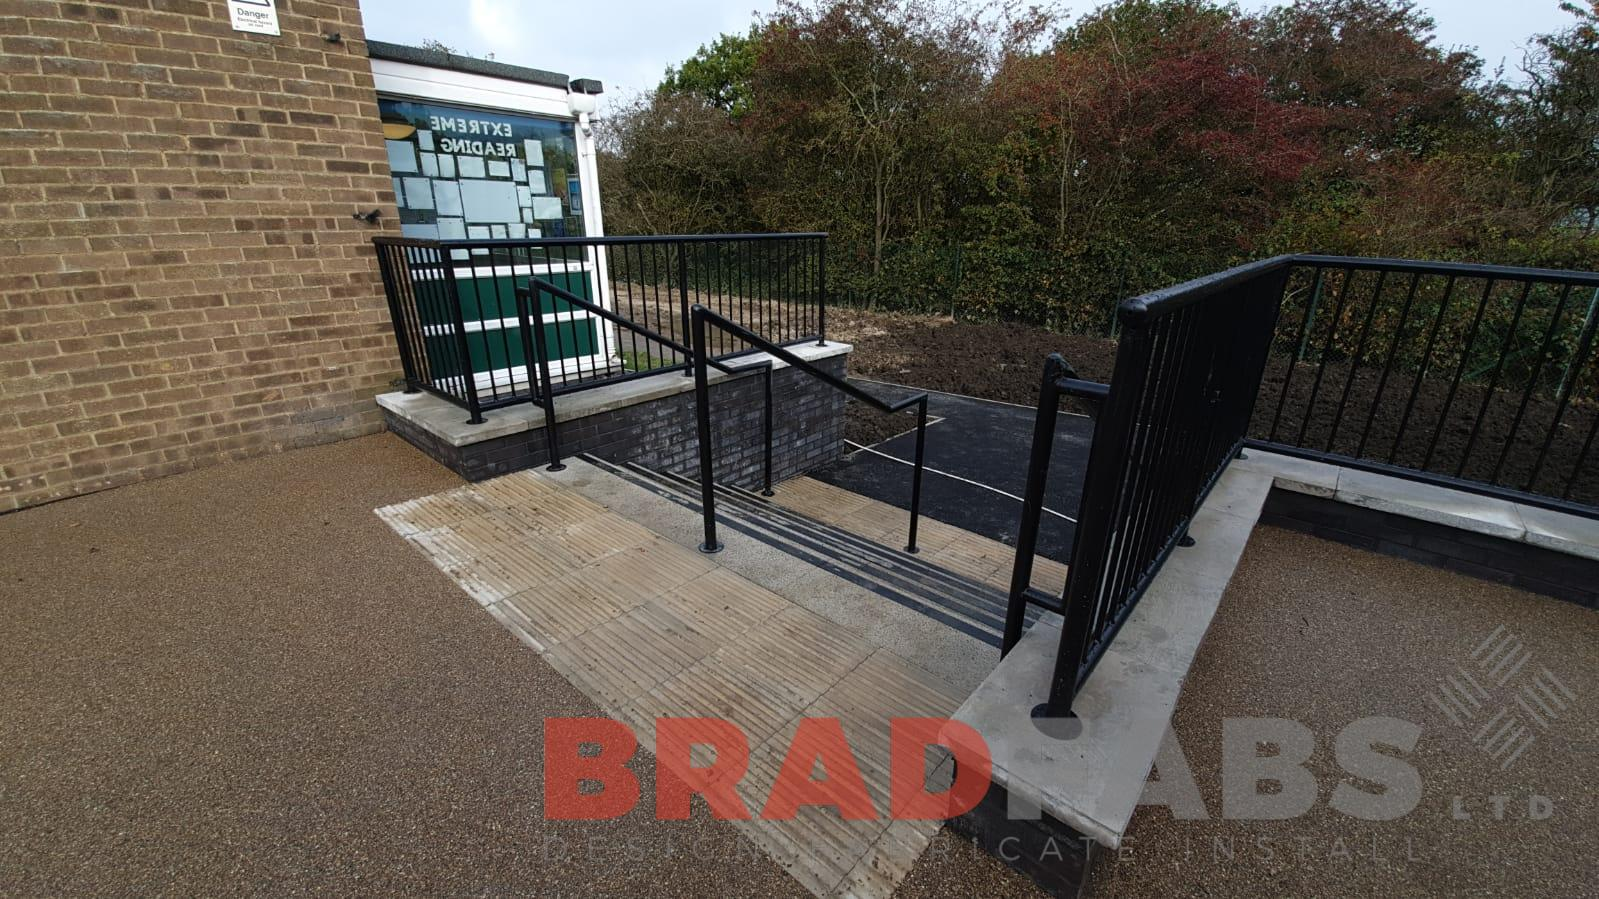 mild steel, galvanised and powder coated black railings for a school, by Bradfabs Ltd